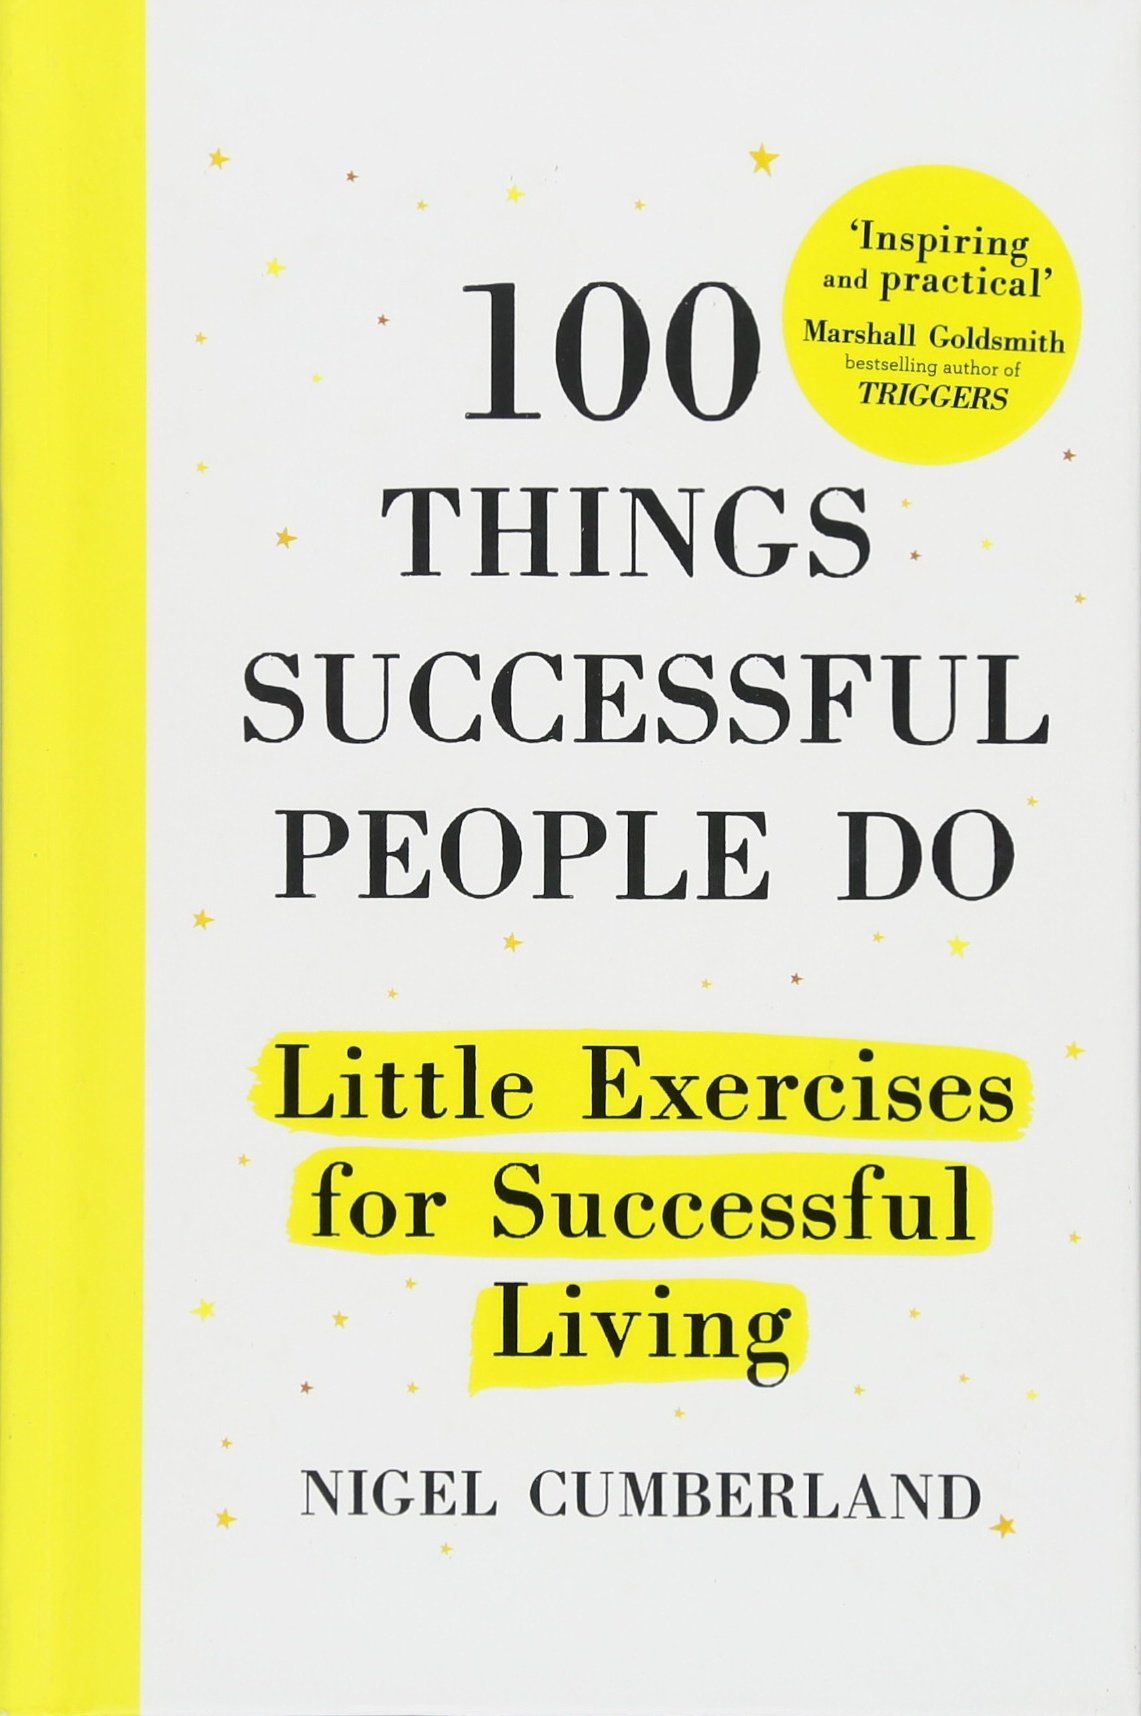 100 Things Successful People Do: Little Exercises for Successful Living pdf